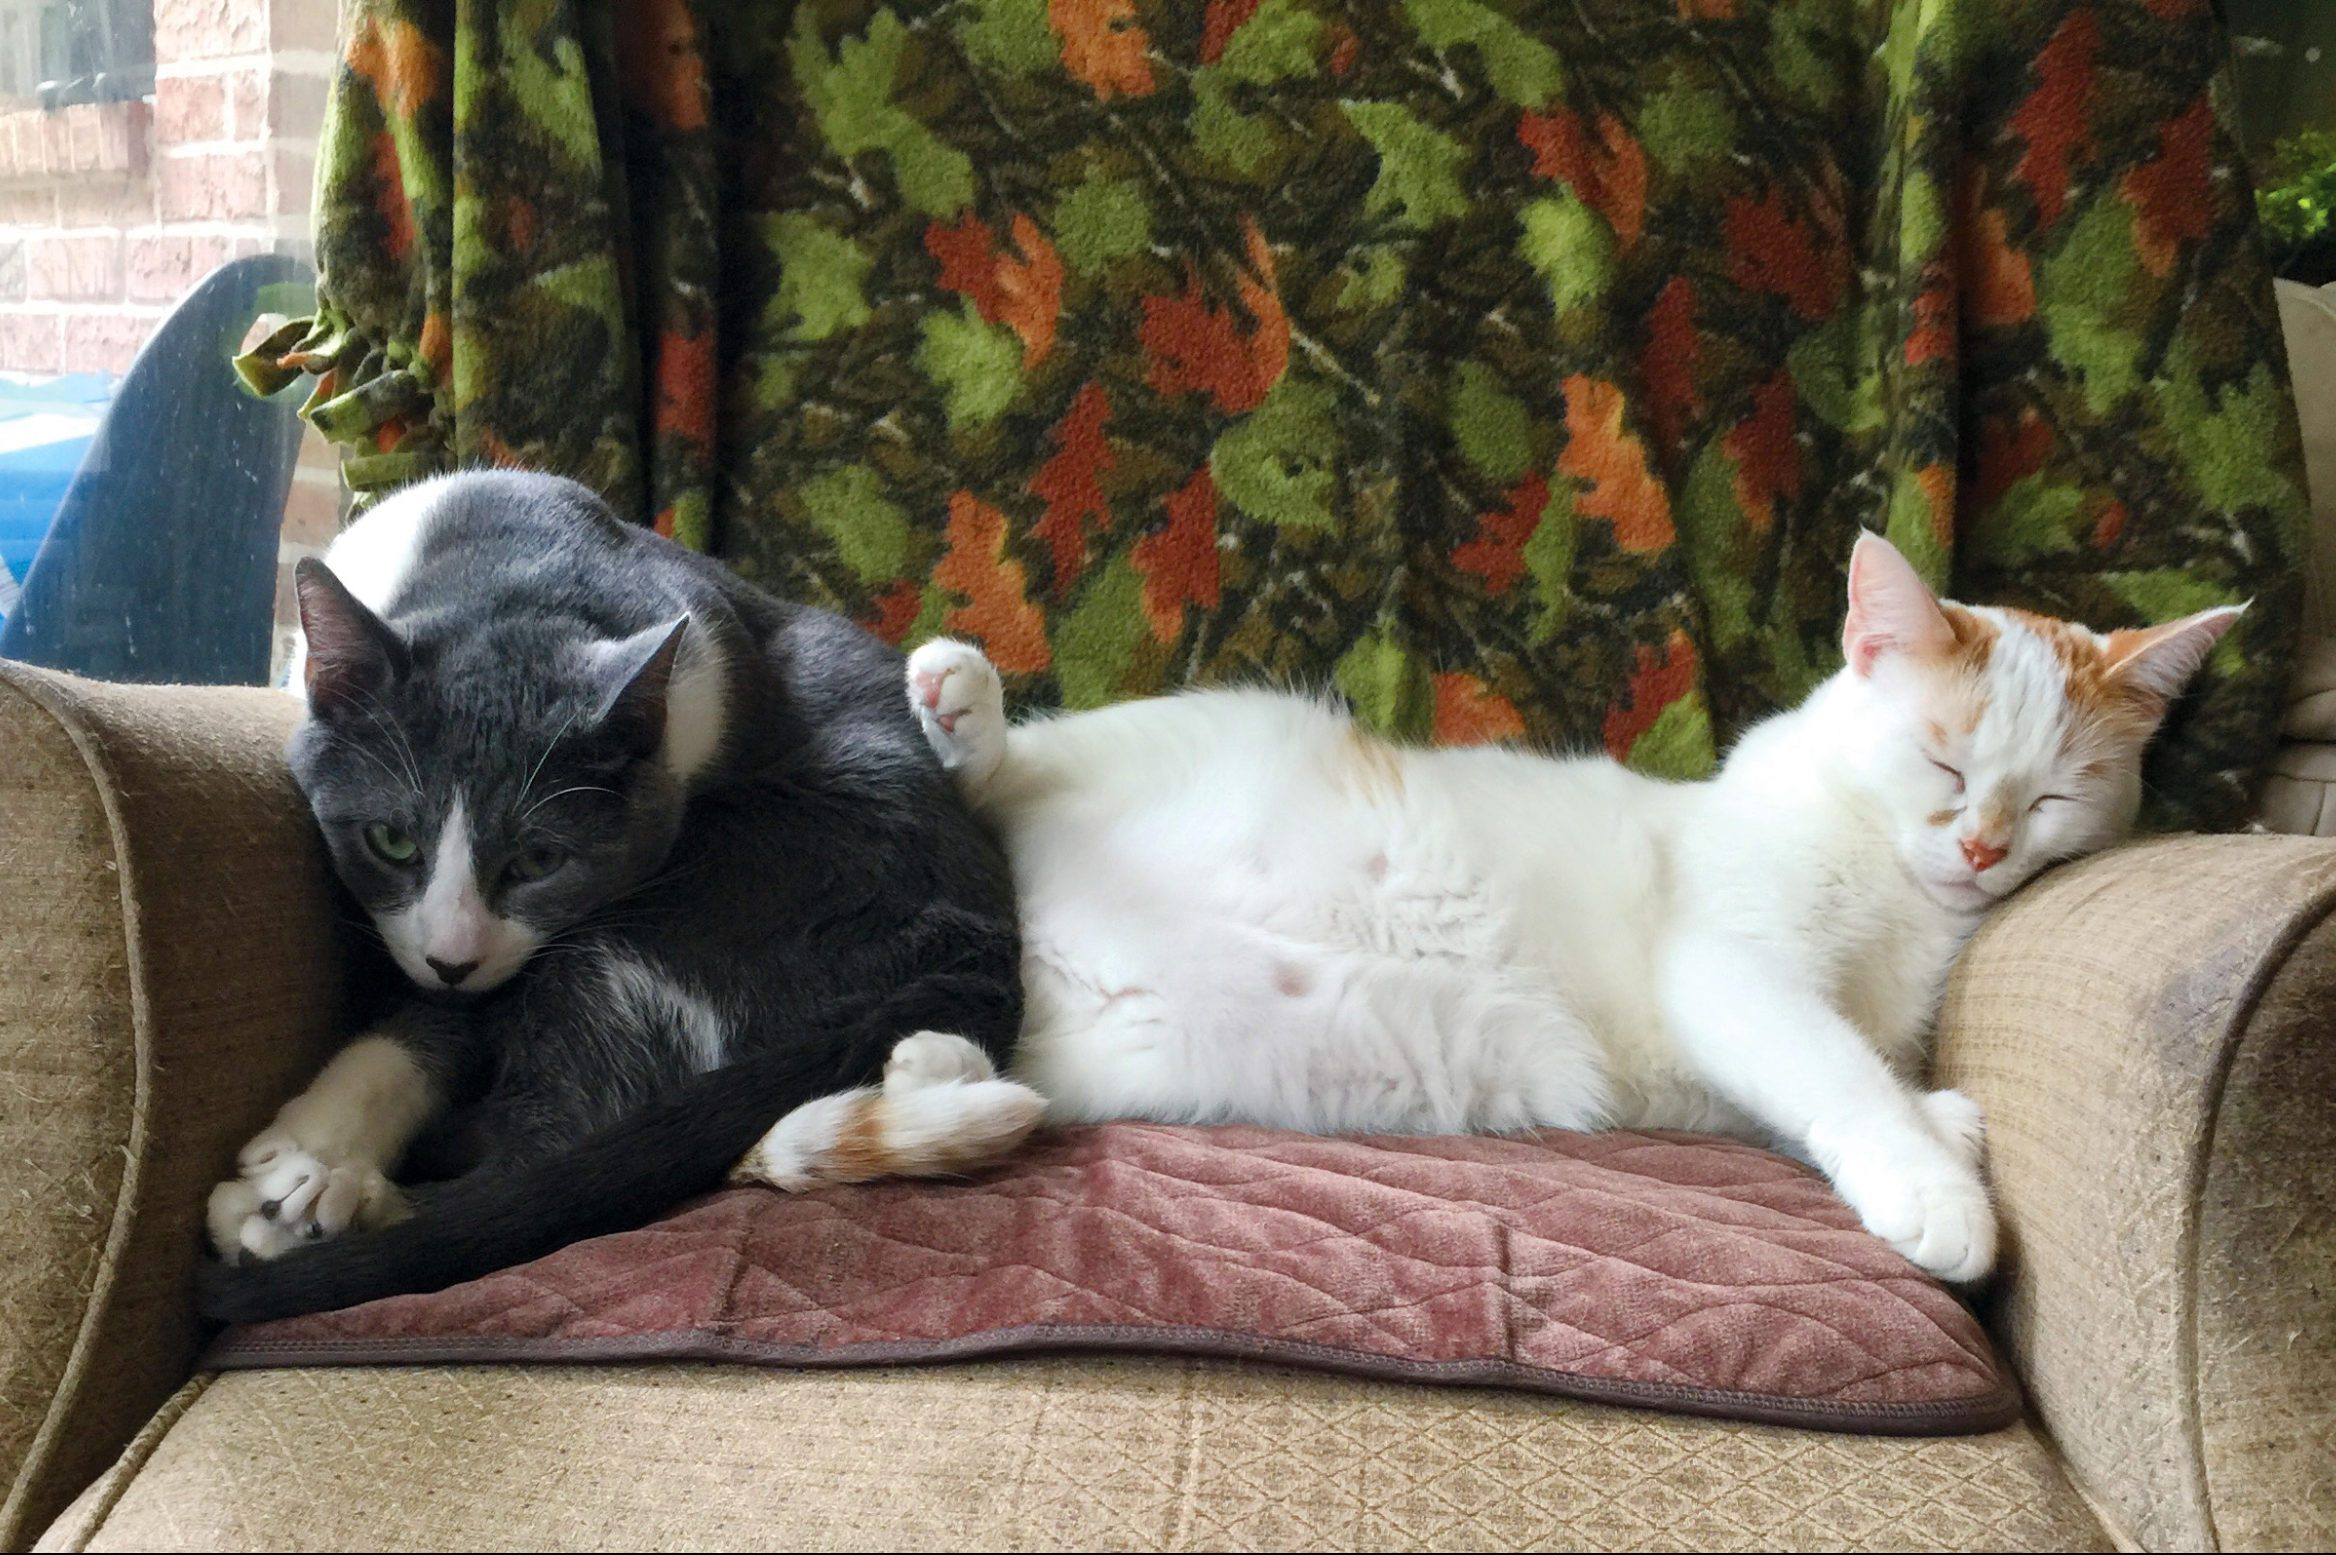 two cats sharing one seat; one cat is pushing the other to have more space